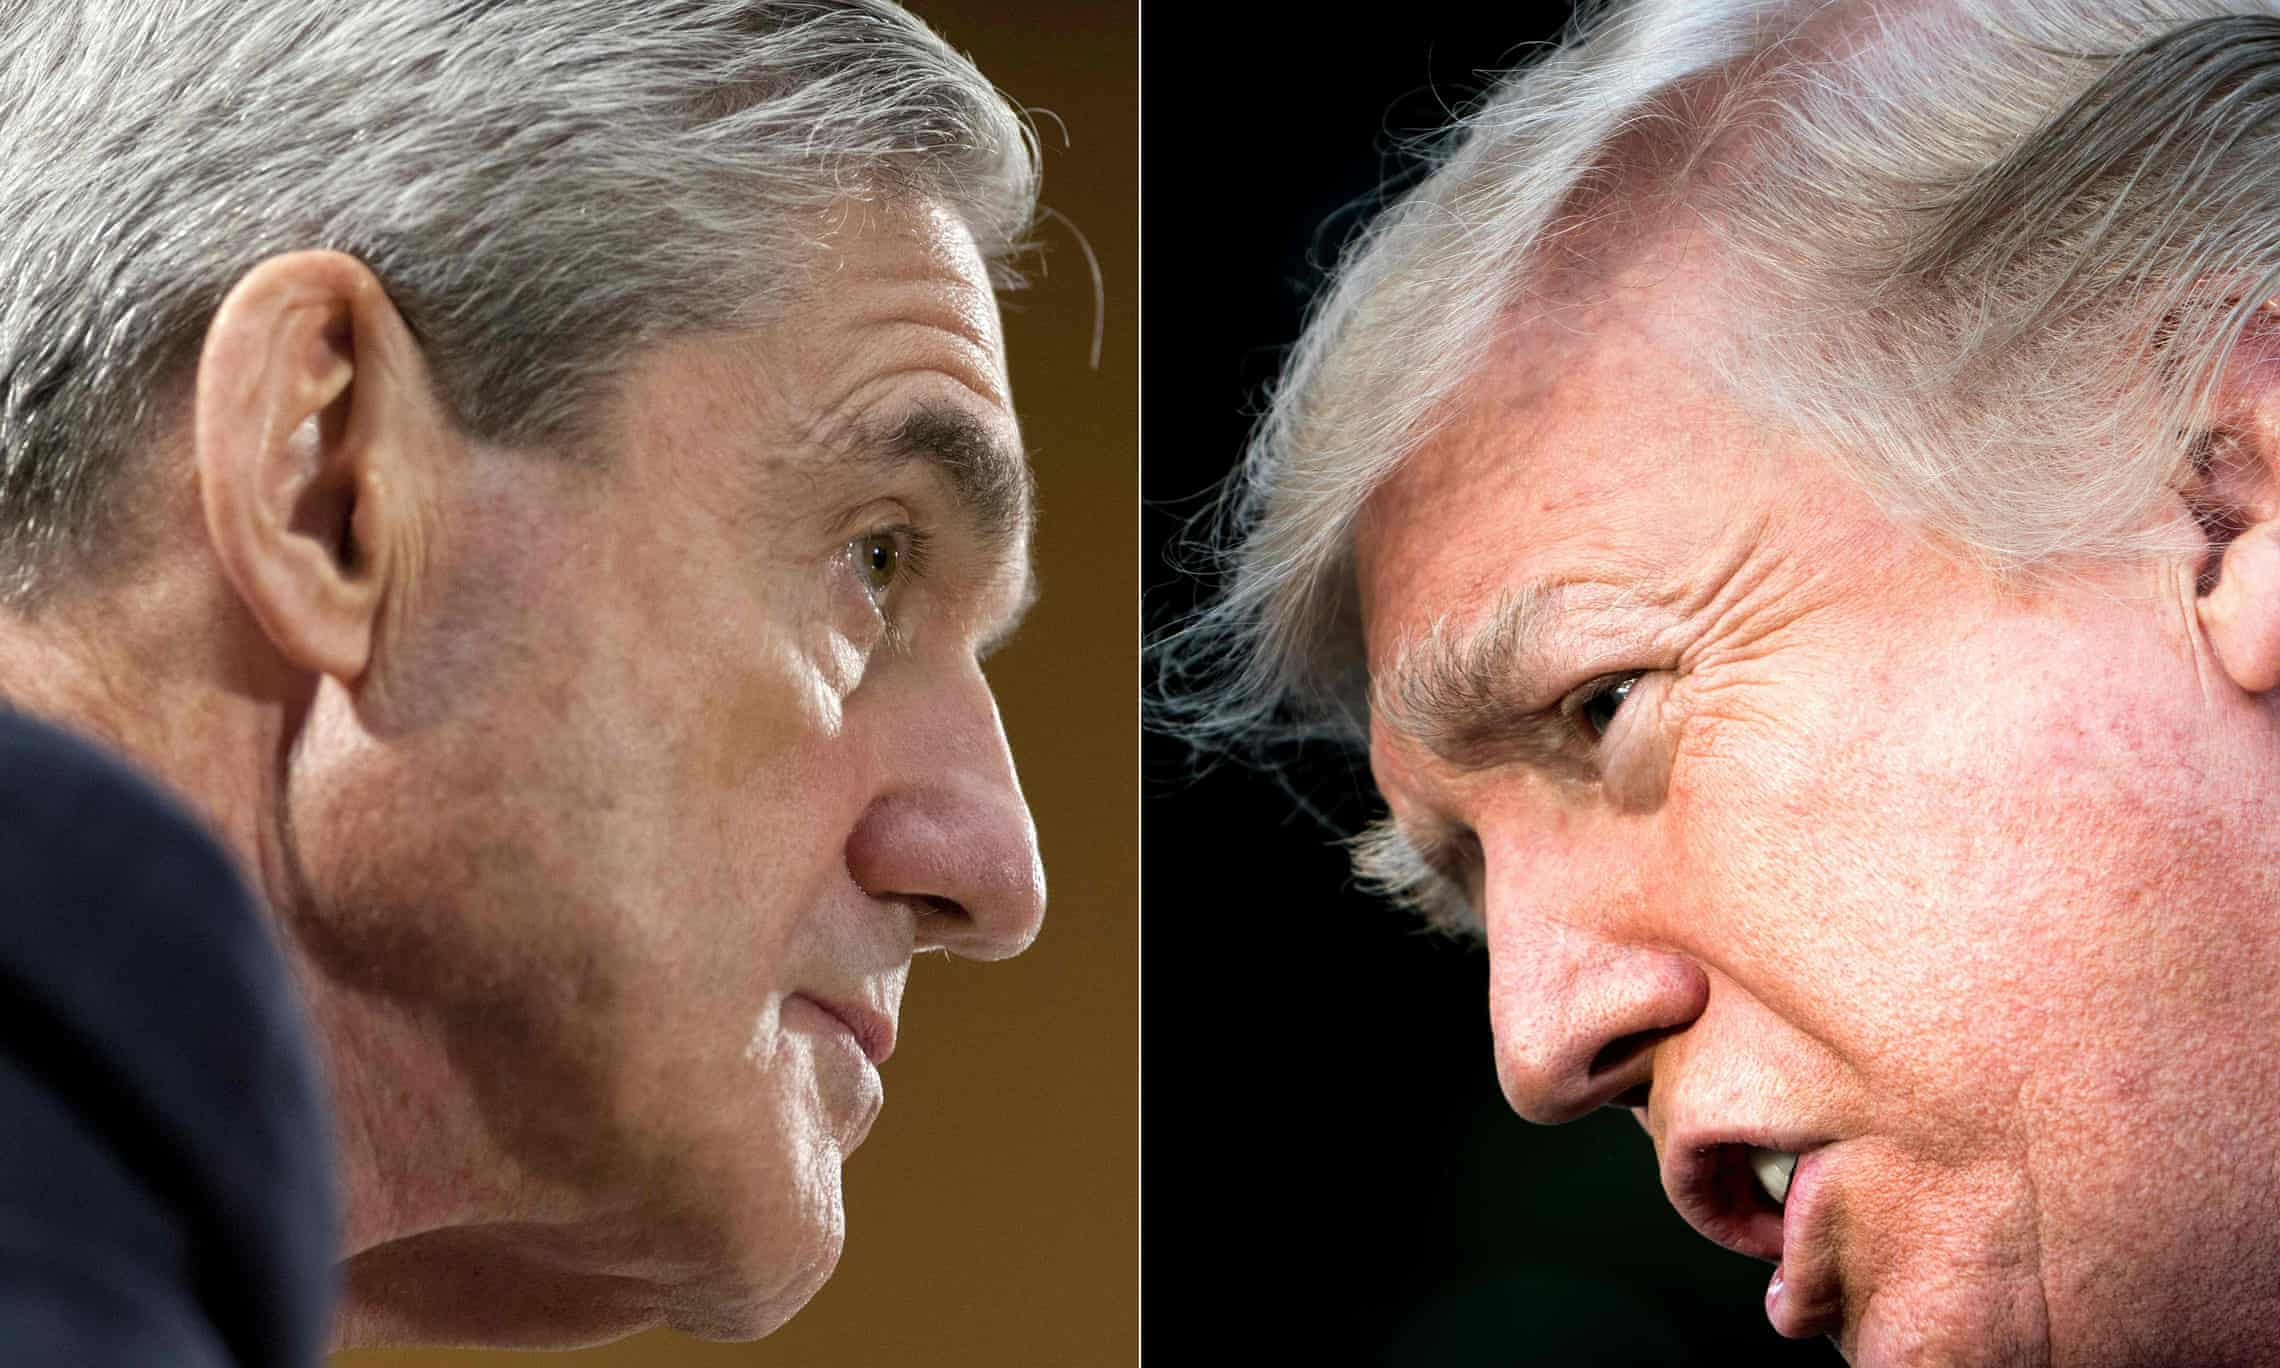 'He has moved incredibly quickly': Mueller nears Trump endgame (theguardian.com)